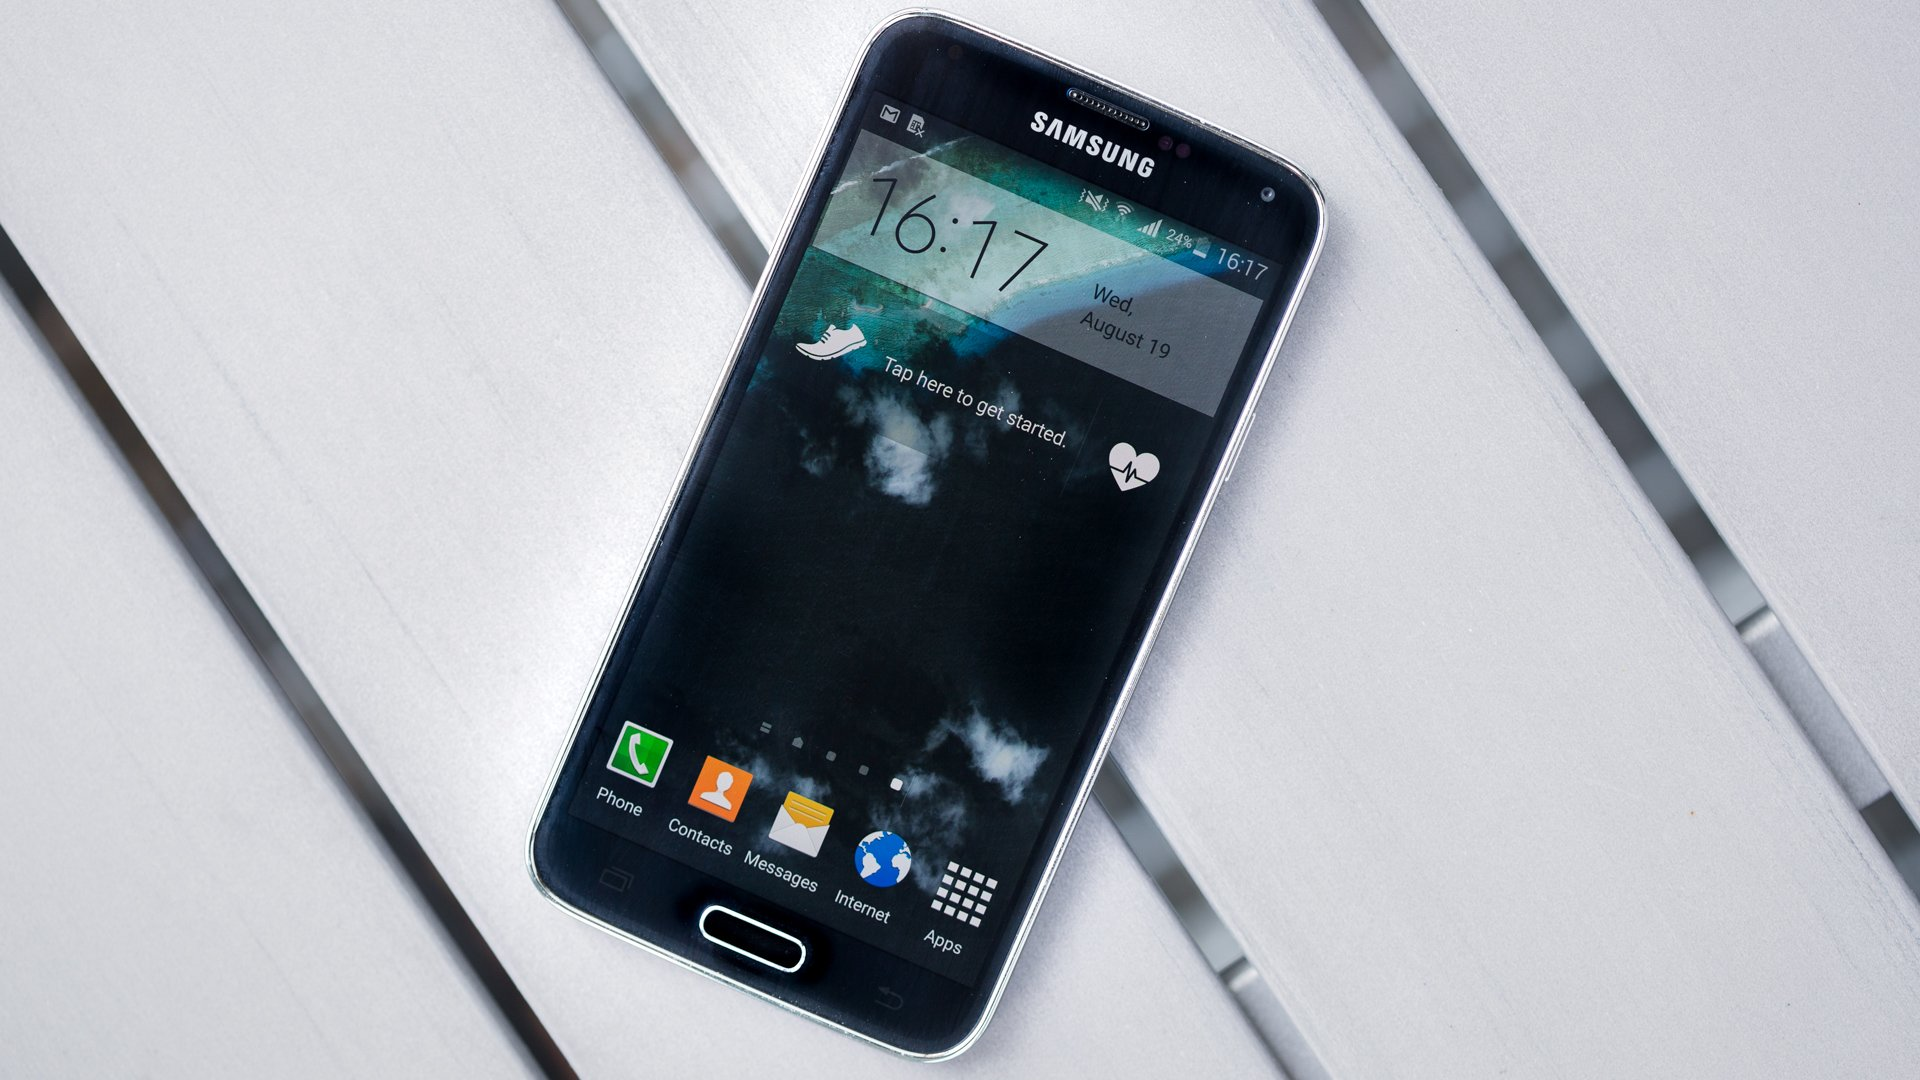 How to download apps and games on my Samsung Galaxy S5